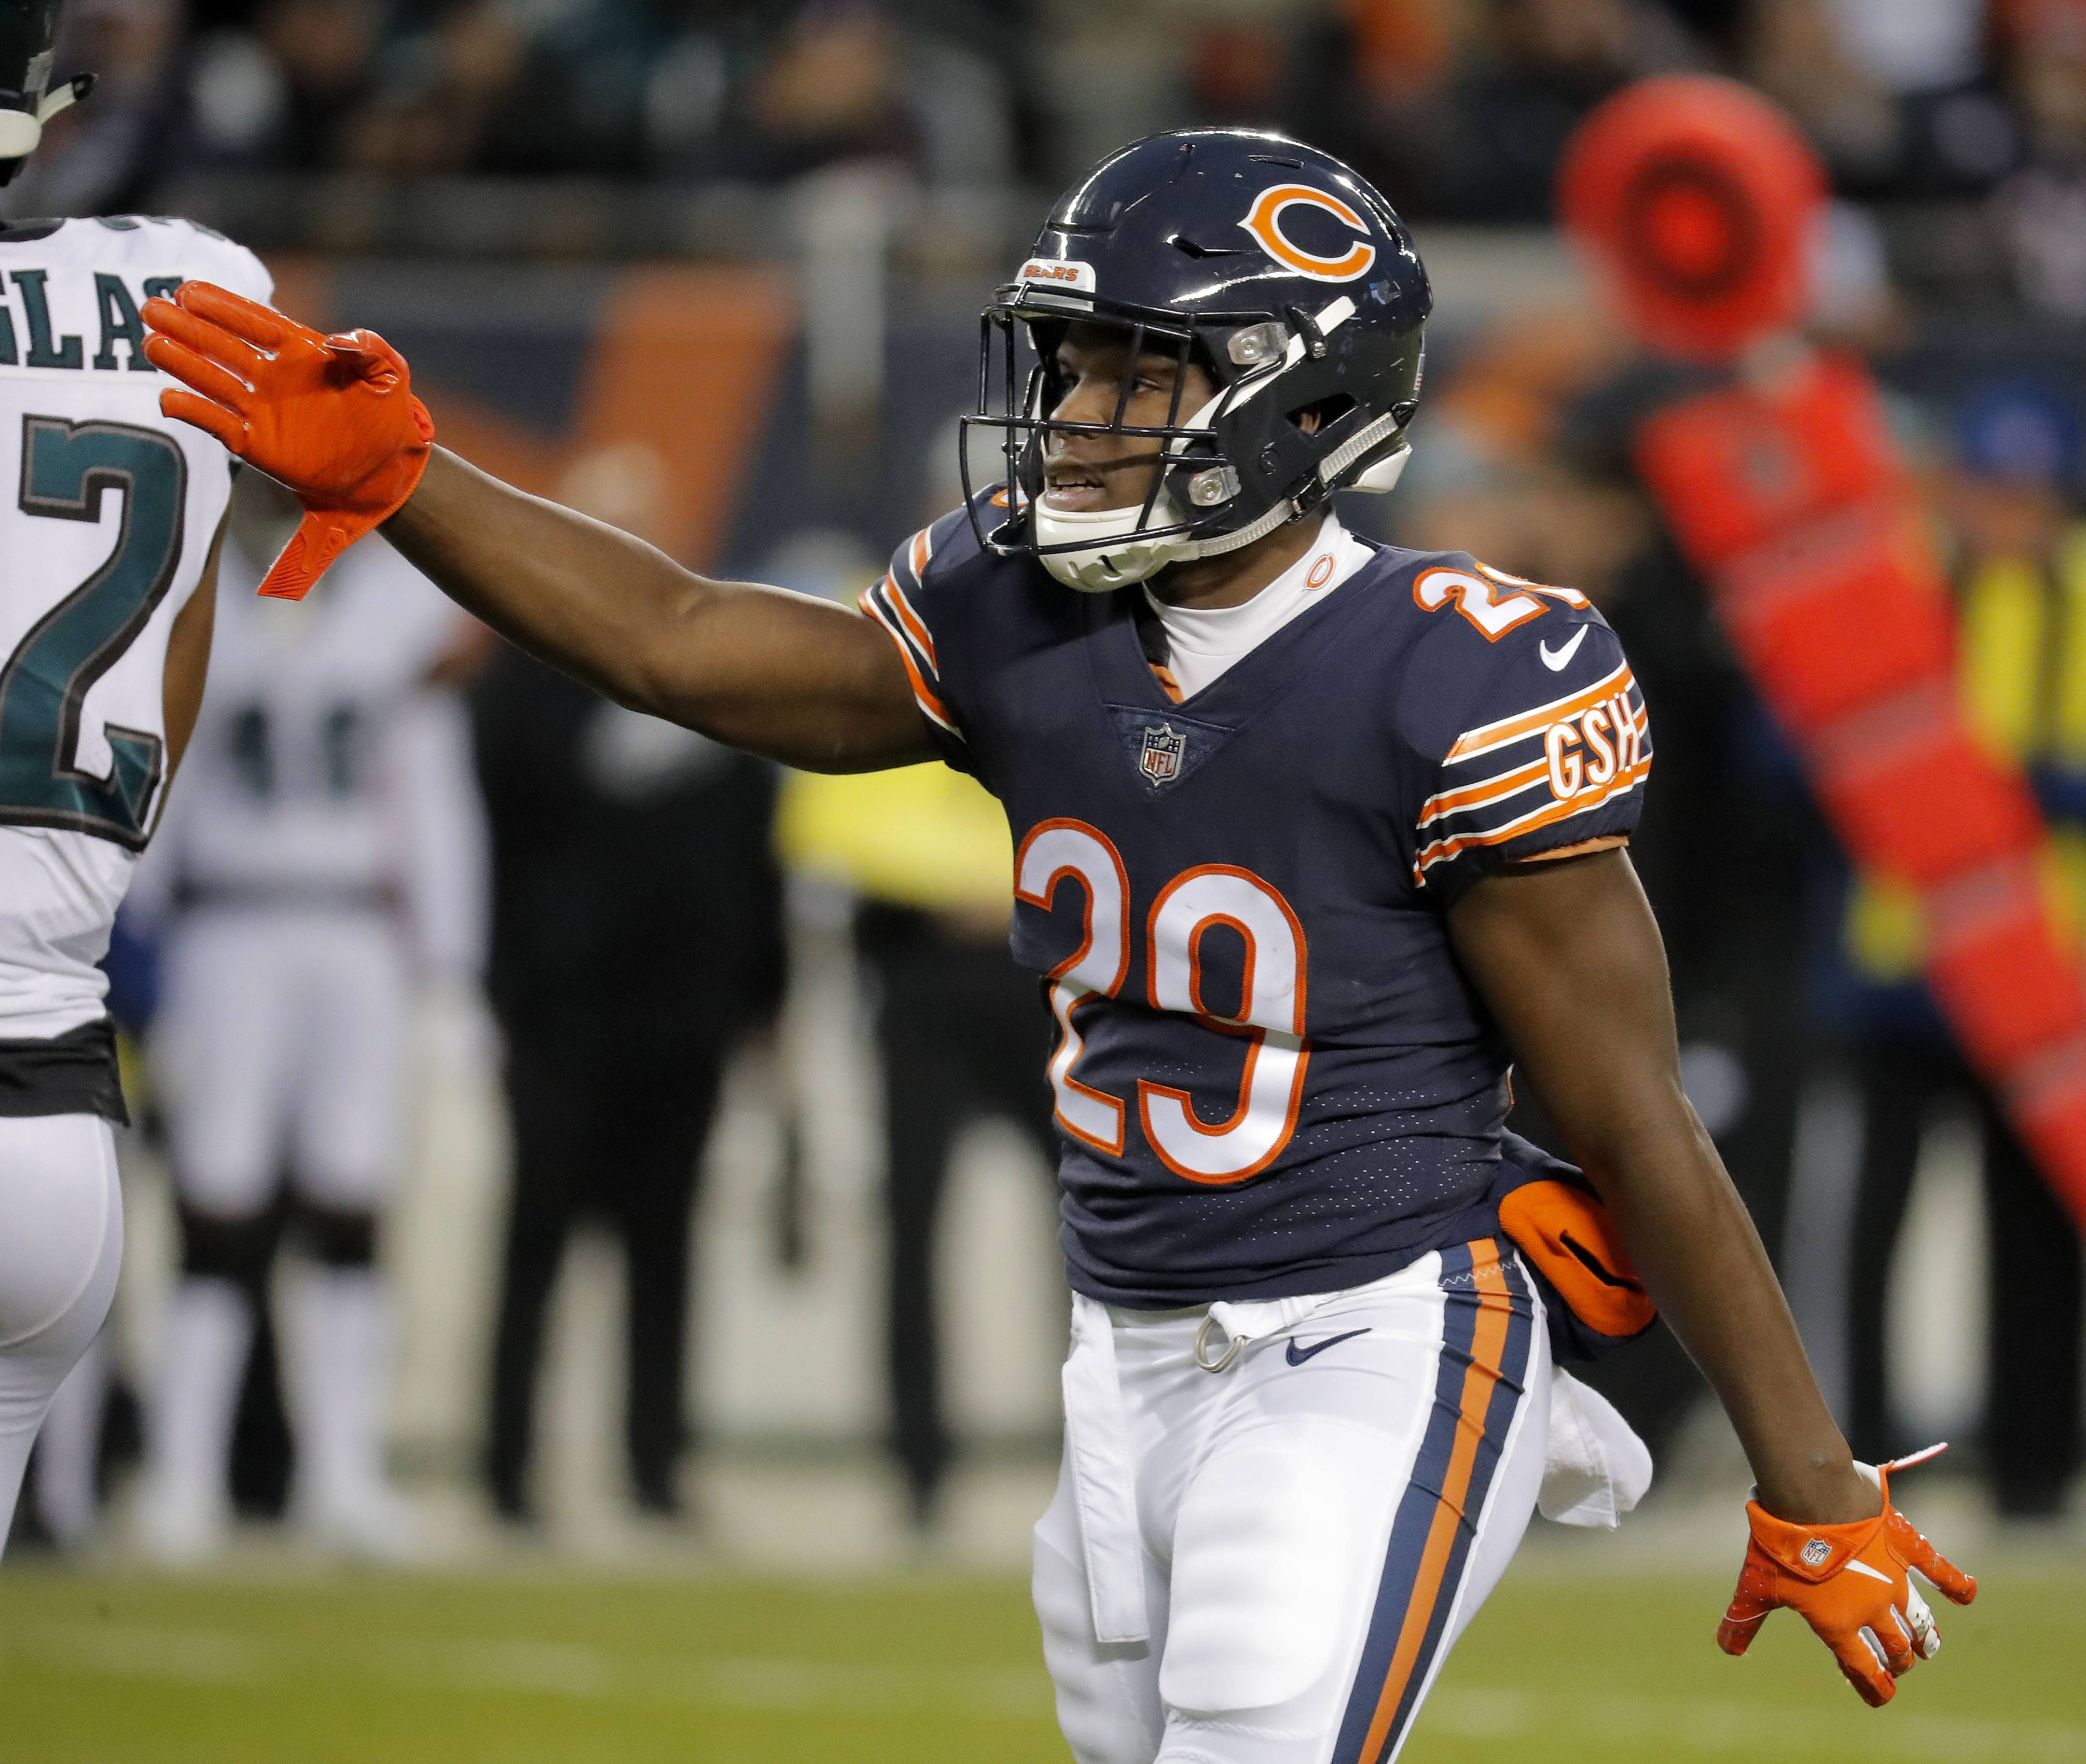 Chicago Bears running back Tarik Cohen signals a first down during the NFC wild card game Sunday, January 6, 2019 at Soldier Field in Chicago.